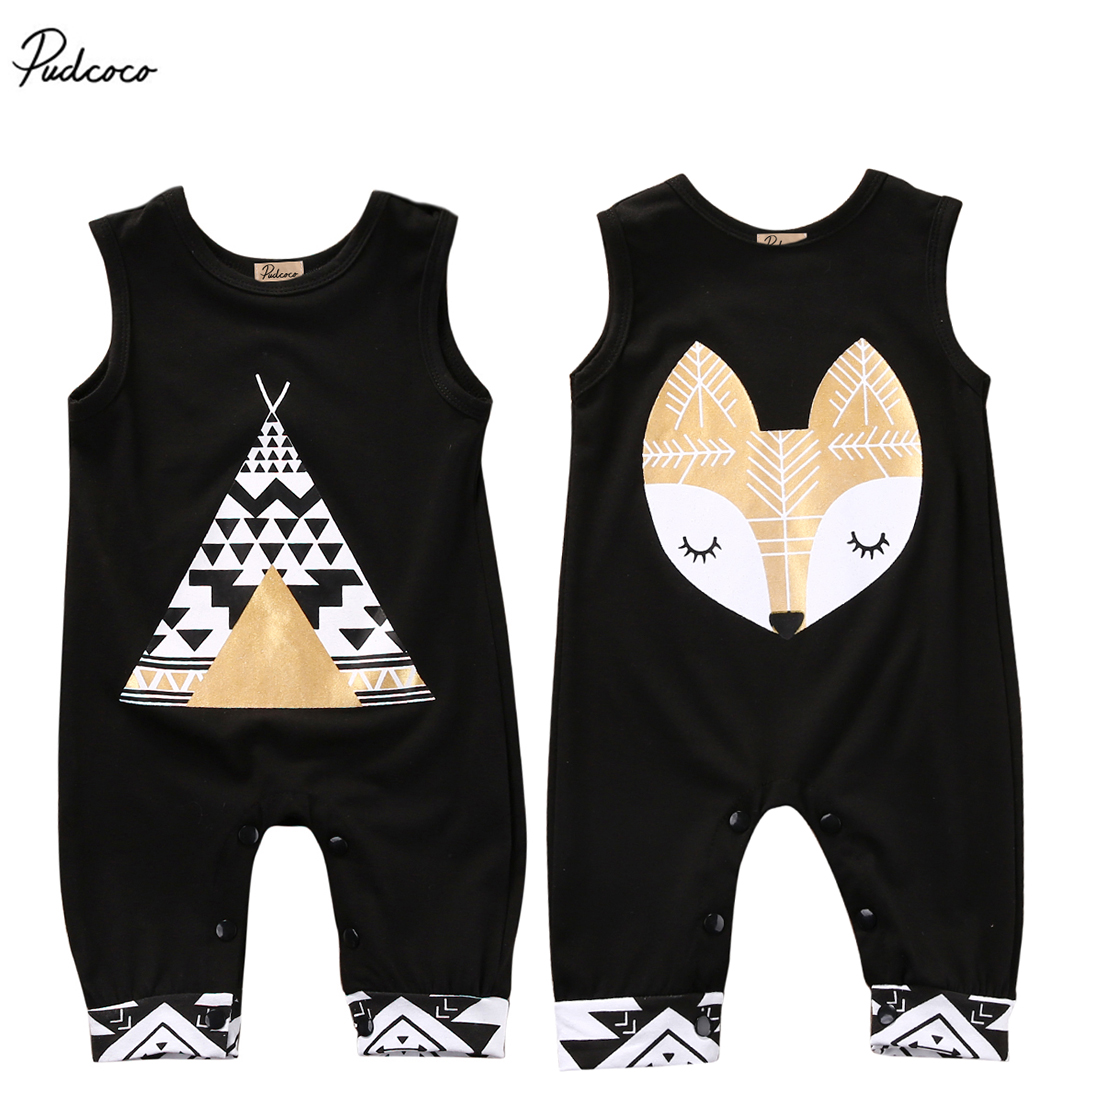 Cotton Newborn Baby Boys Girls Tent Fox Romper 2017 New Summer Sleeveless Jumpsuit Clothes Sunsuit Outfits 2017 summer toddler kids girls striped baby romper off shoulder flare sleeve cotton clothes jumpsuit outfits sunsuit 0 4t